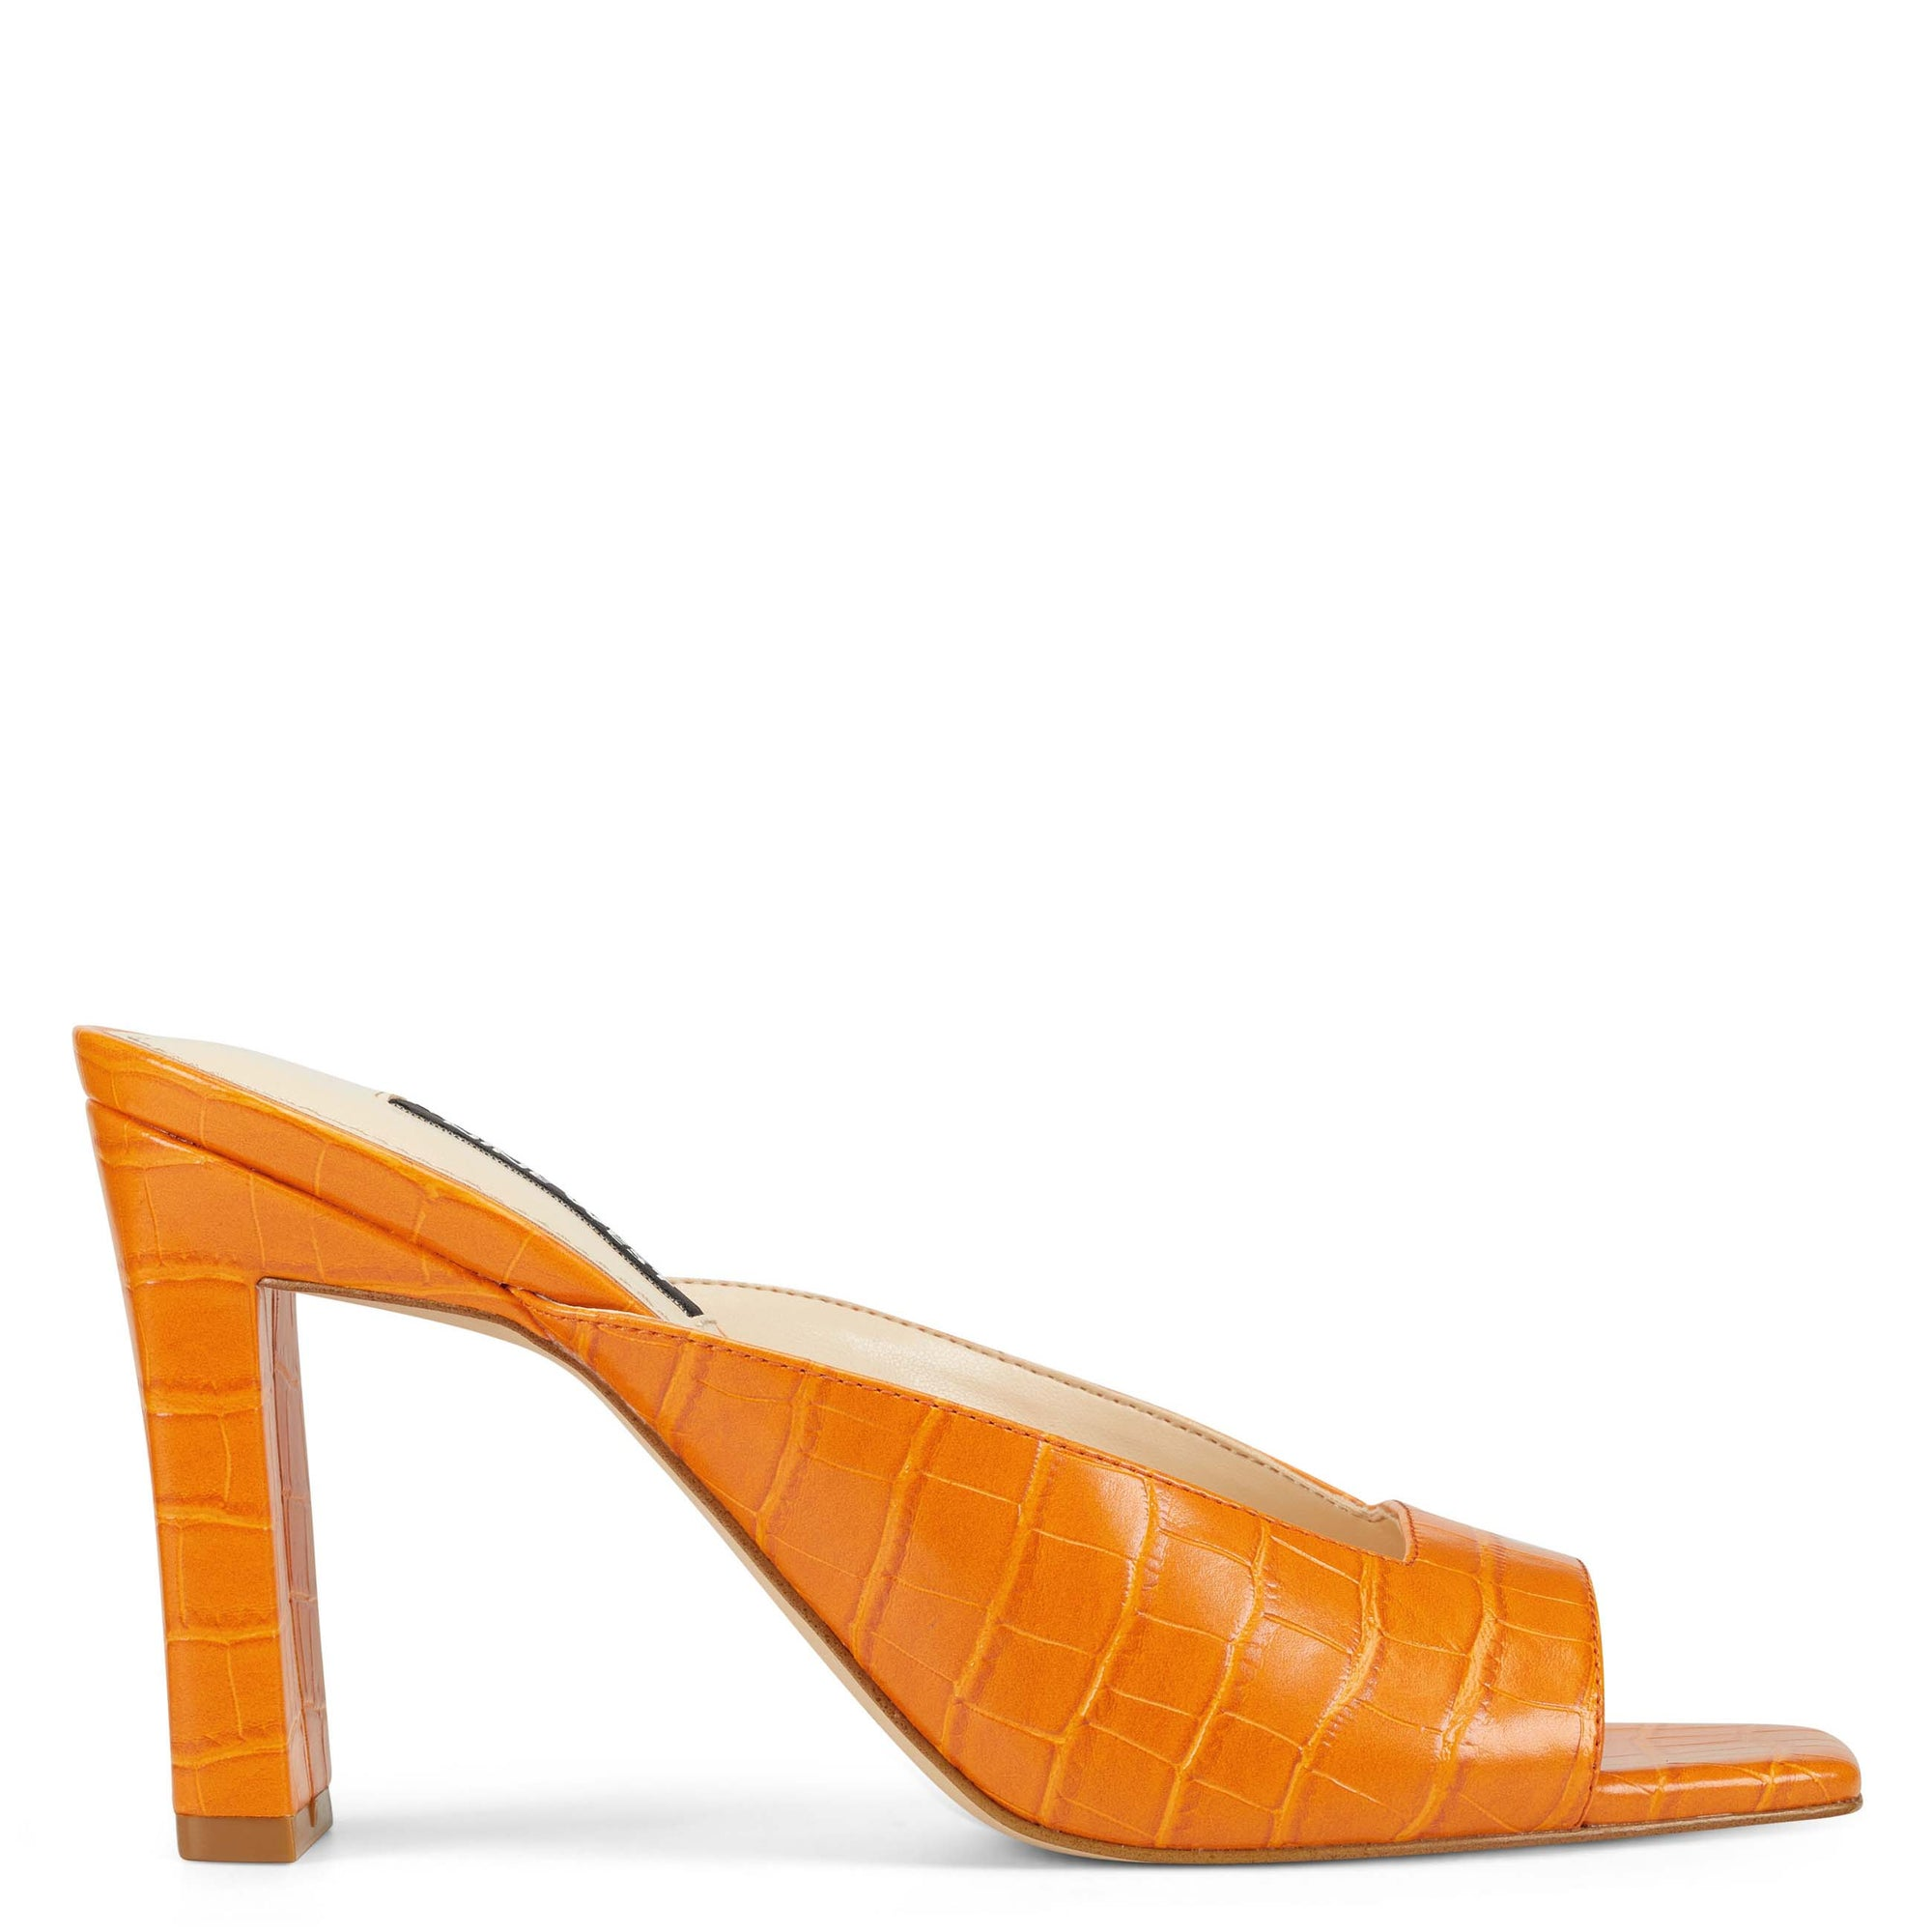 pyper-heeled-slide-sandals-in-orange-embossed-croco